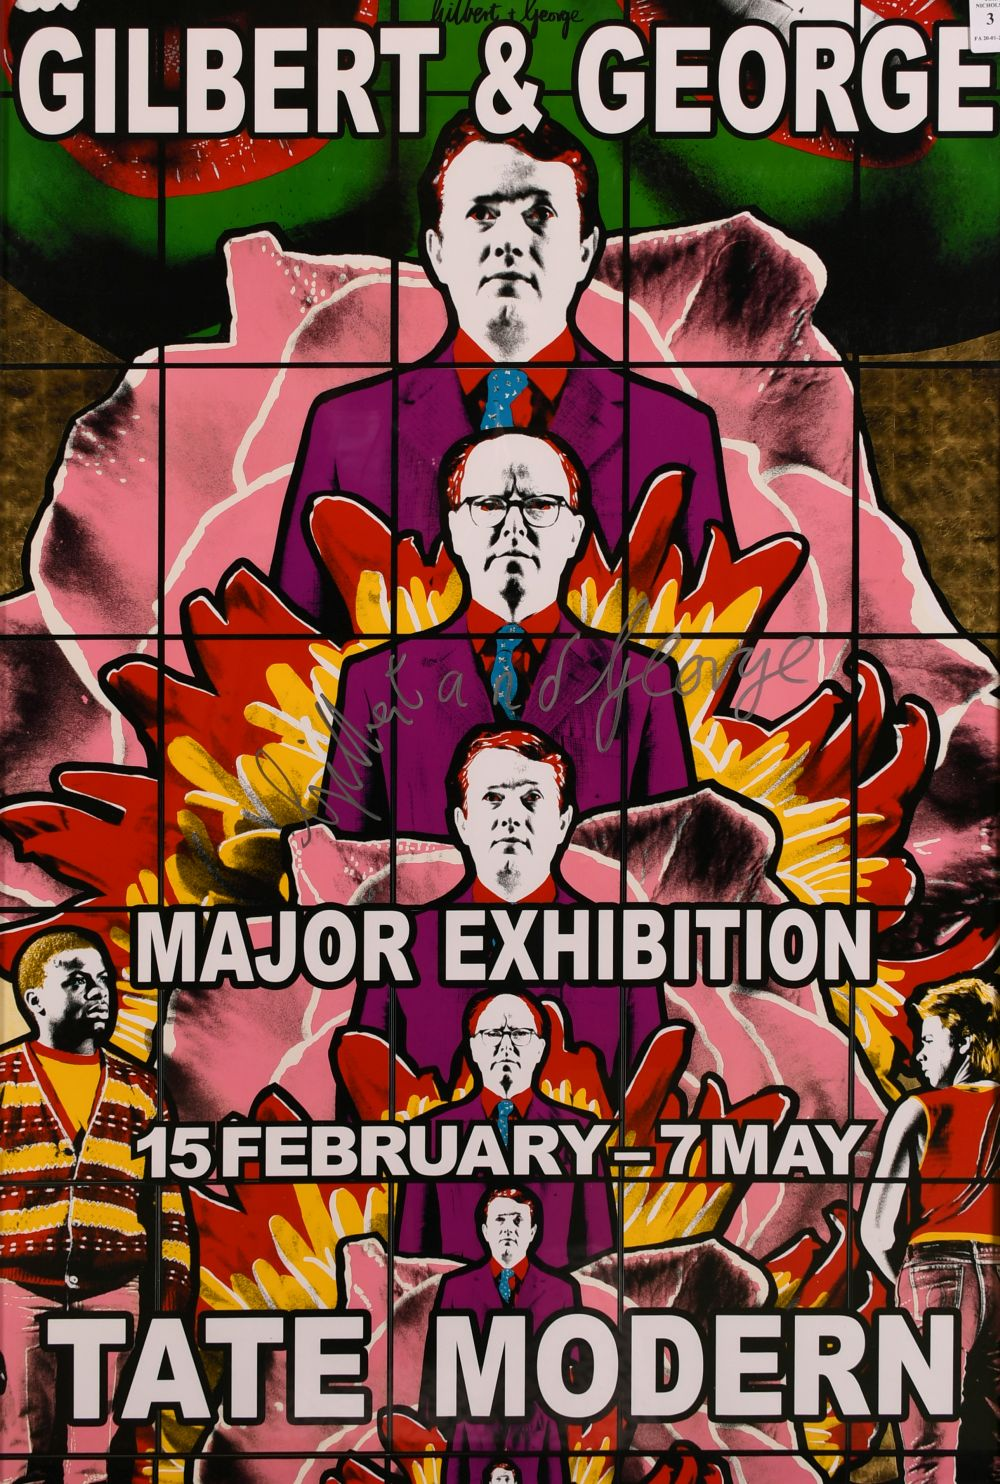 """Gilbert & George, A signed exhibition poster from the Tate Modern, 30"""" x 20""""."""